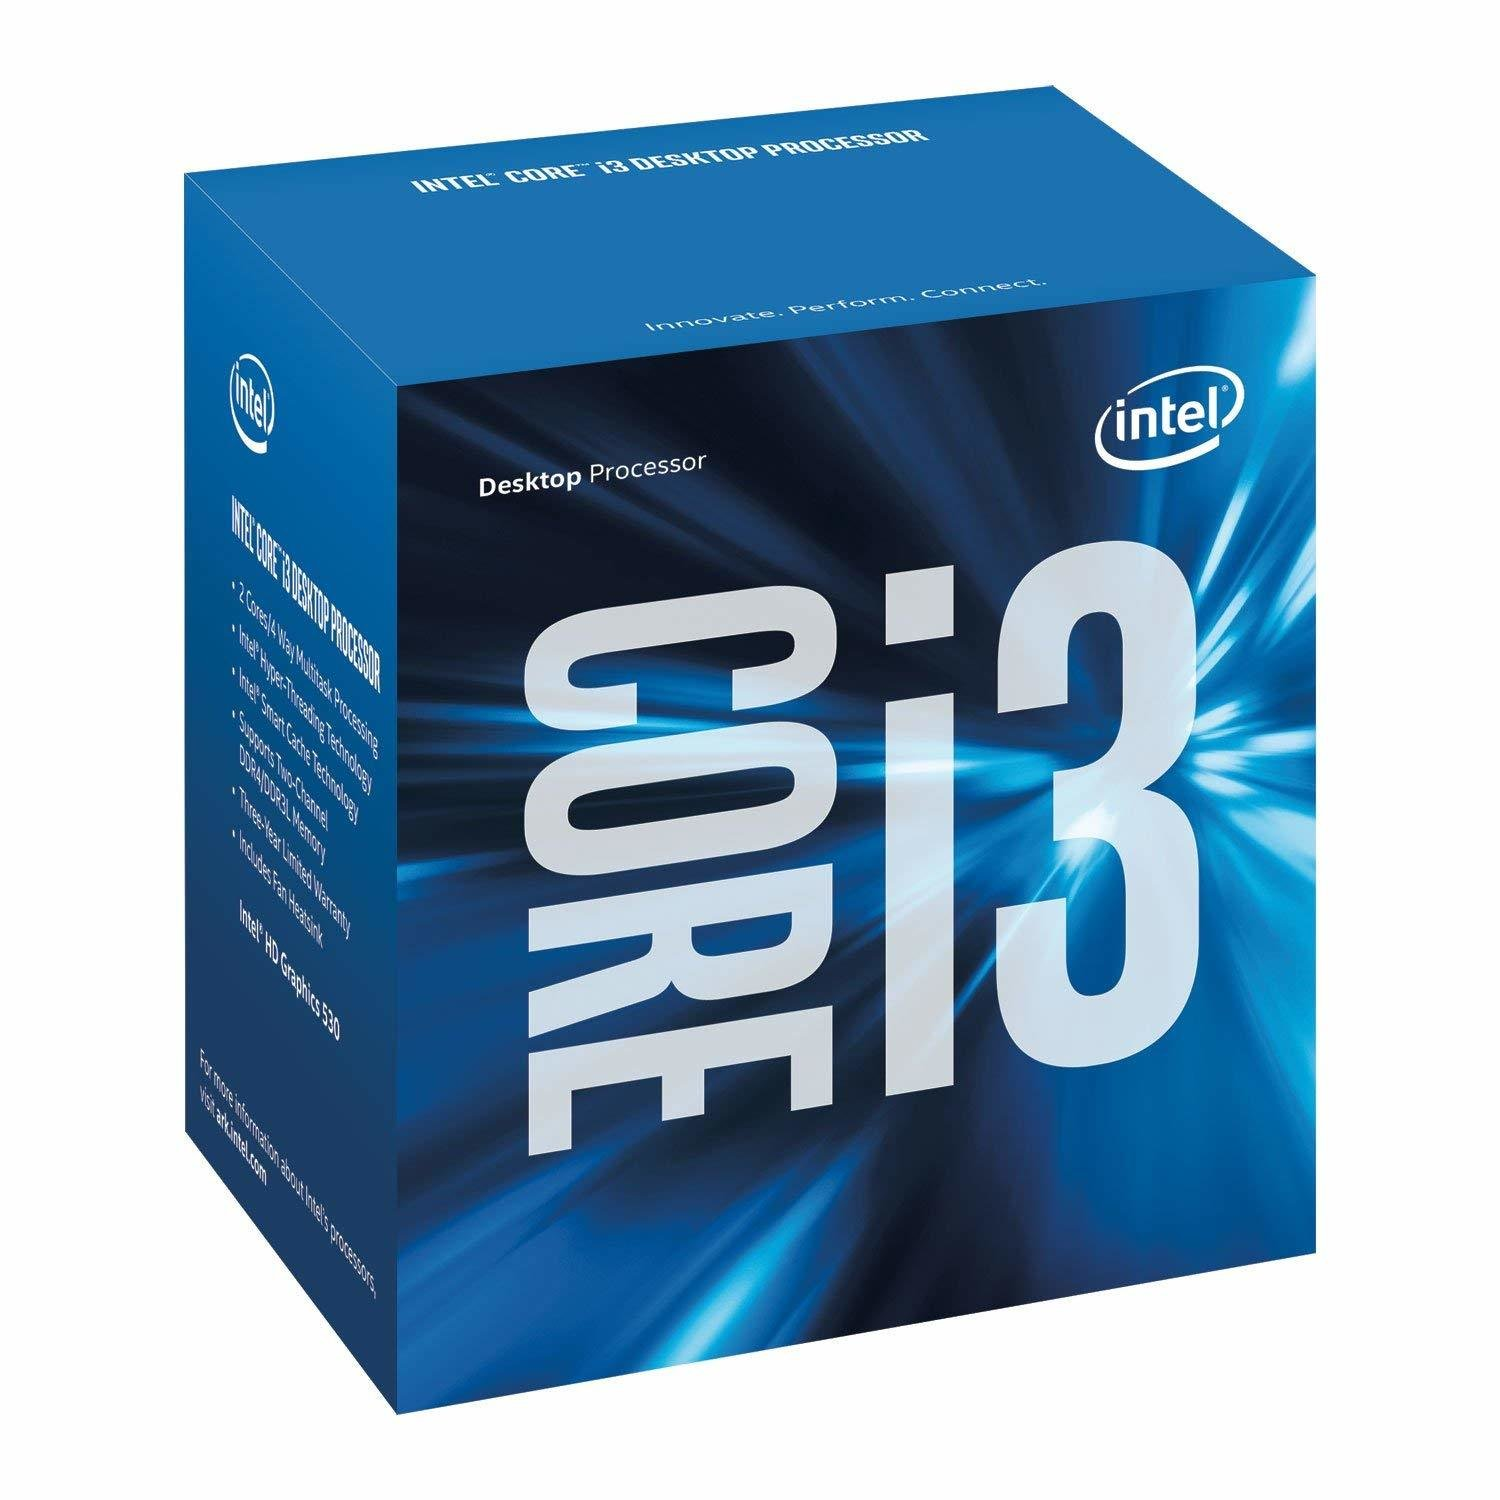 Intel Core i3-6100 6th Gen LGA 1151 Processor TGISCTC00009